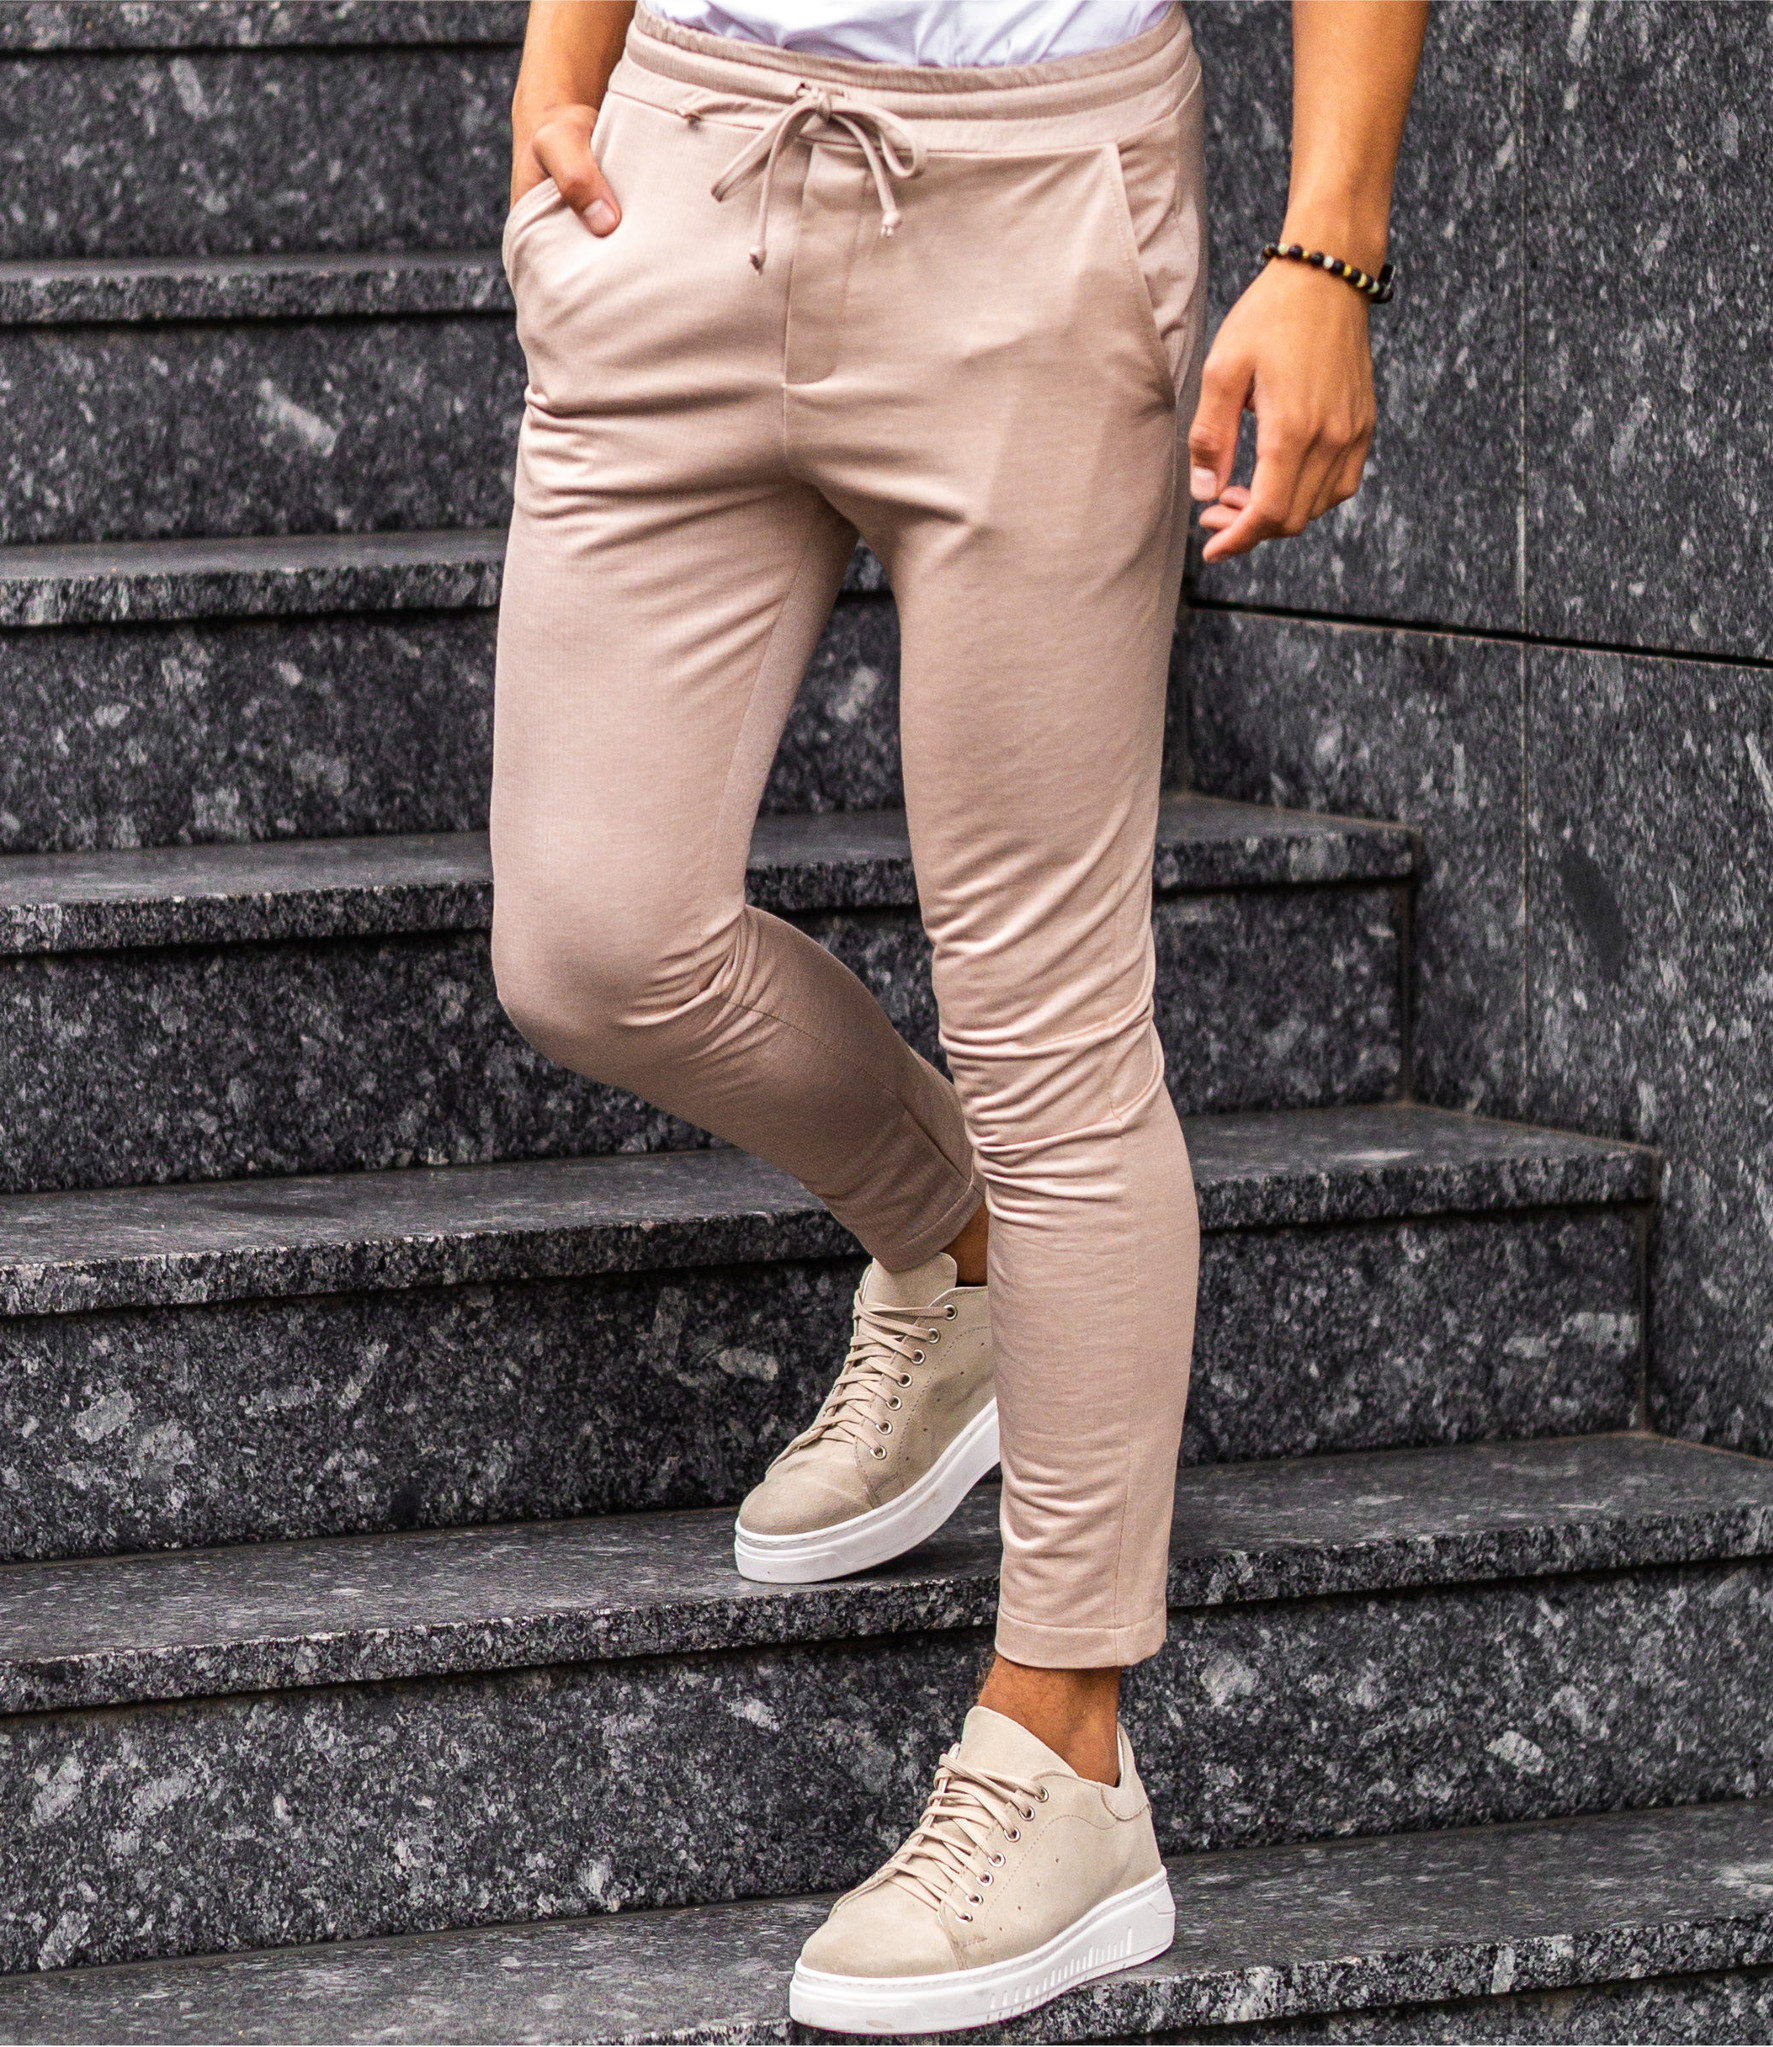 Zumo Extra Skinny Fit Pants DIVIANO-JERSEY LightCamelCream